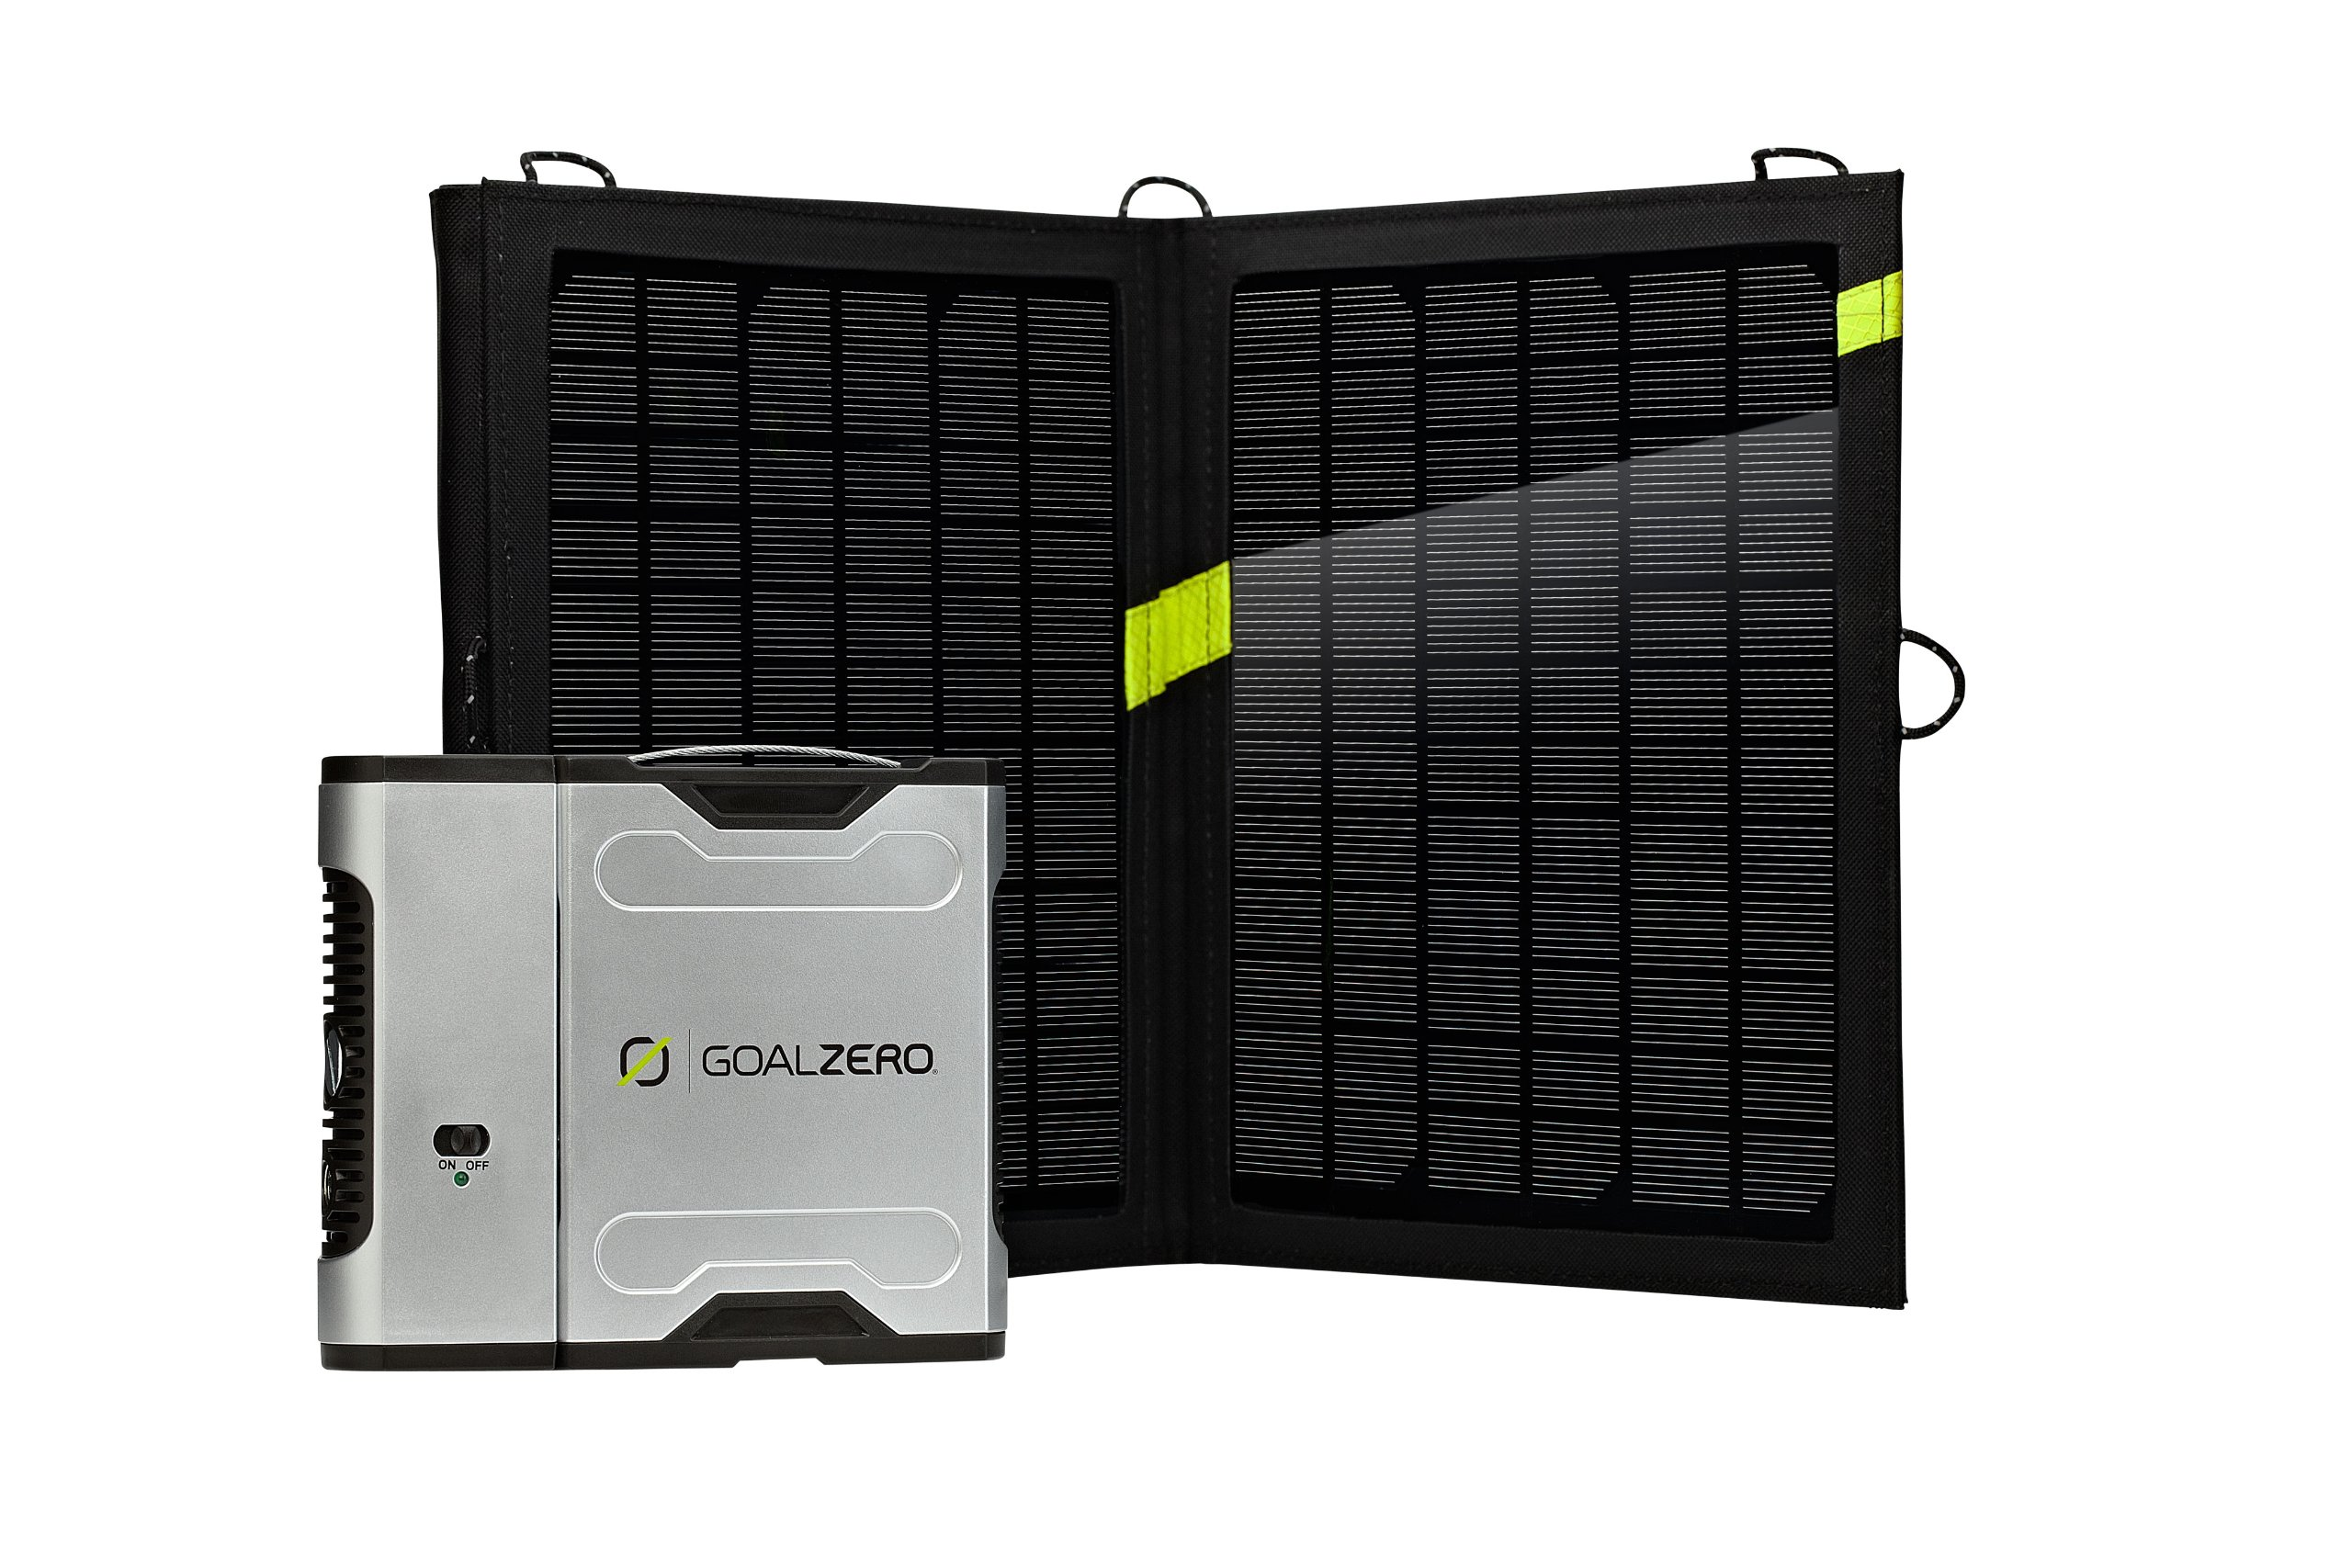 Goal Zero Sherpa 50 Solar Recharging Kit with Nomad 13 Solar Panel